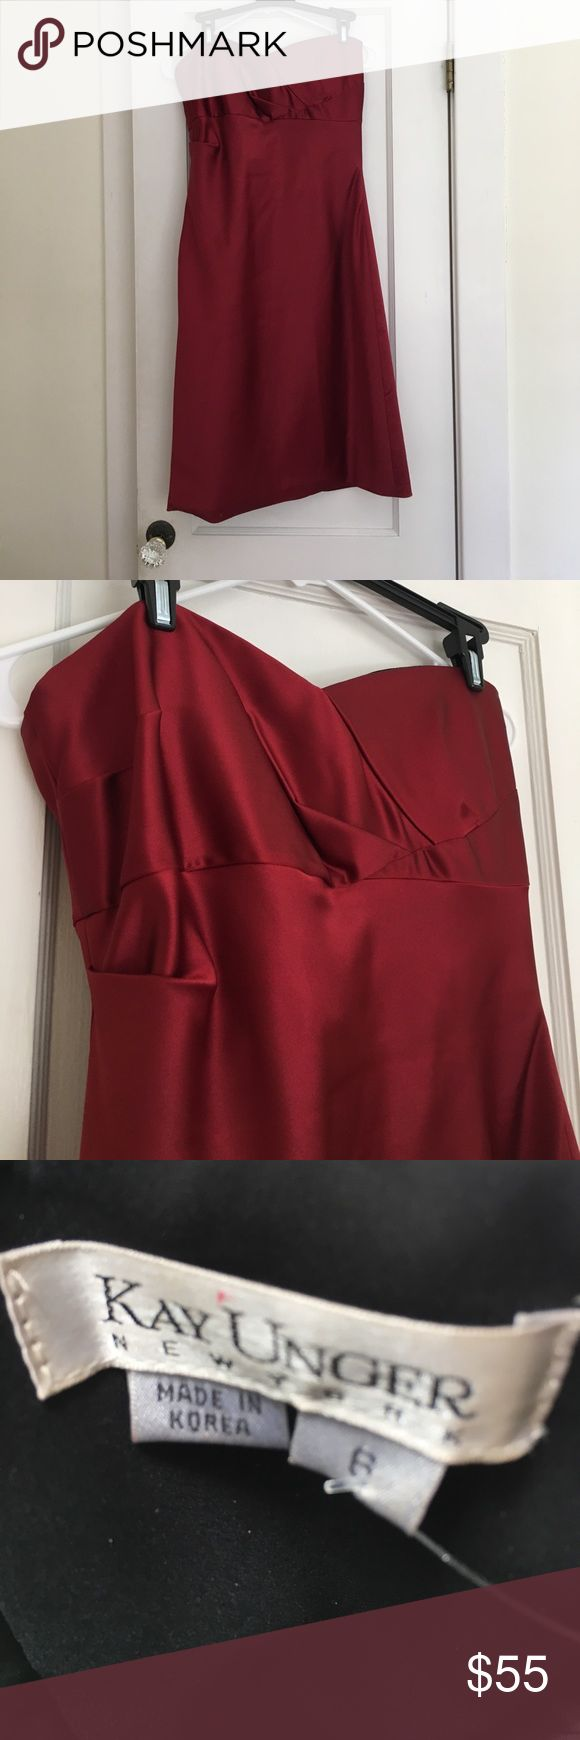 Kay Unger red strapless cocktail dress size 6 Kay Unger red strapless cocktail dress size 6 Kay Unger Dresses